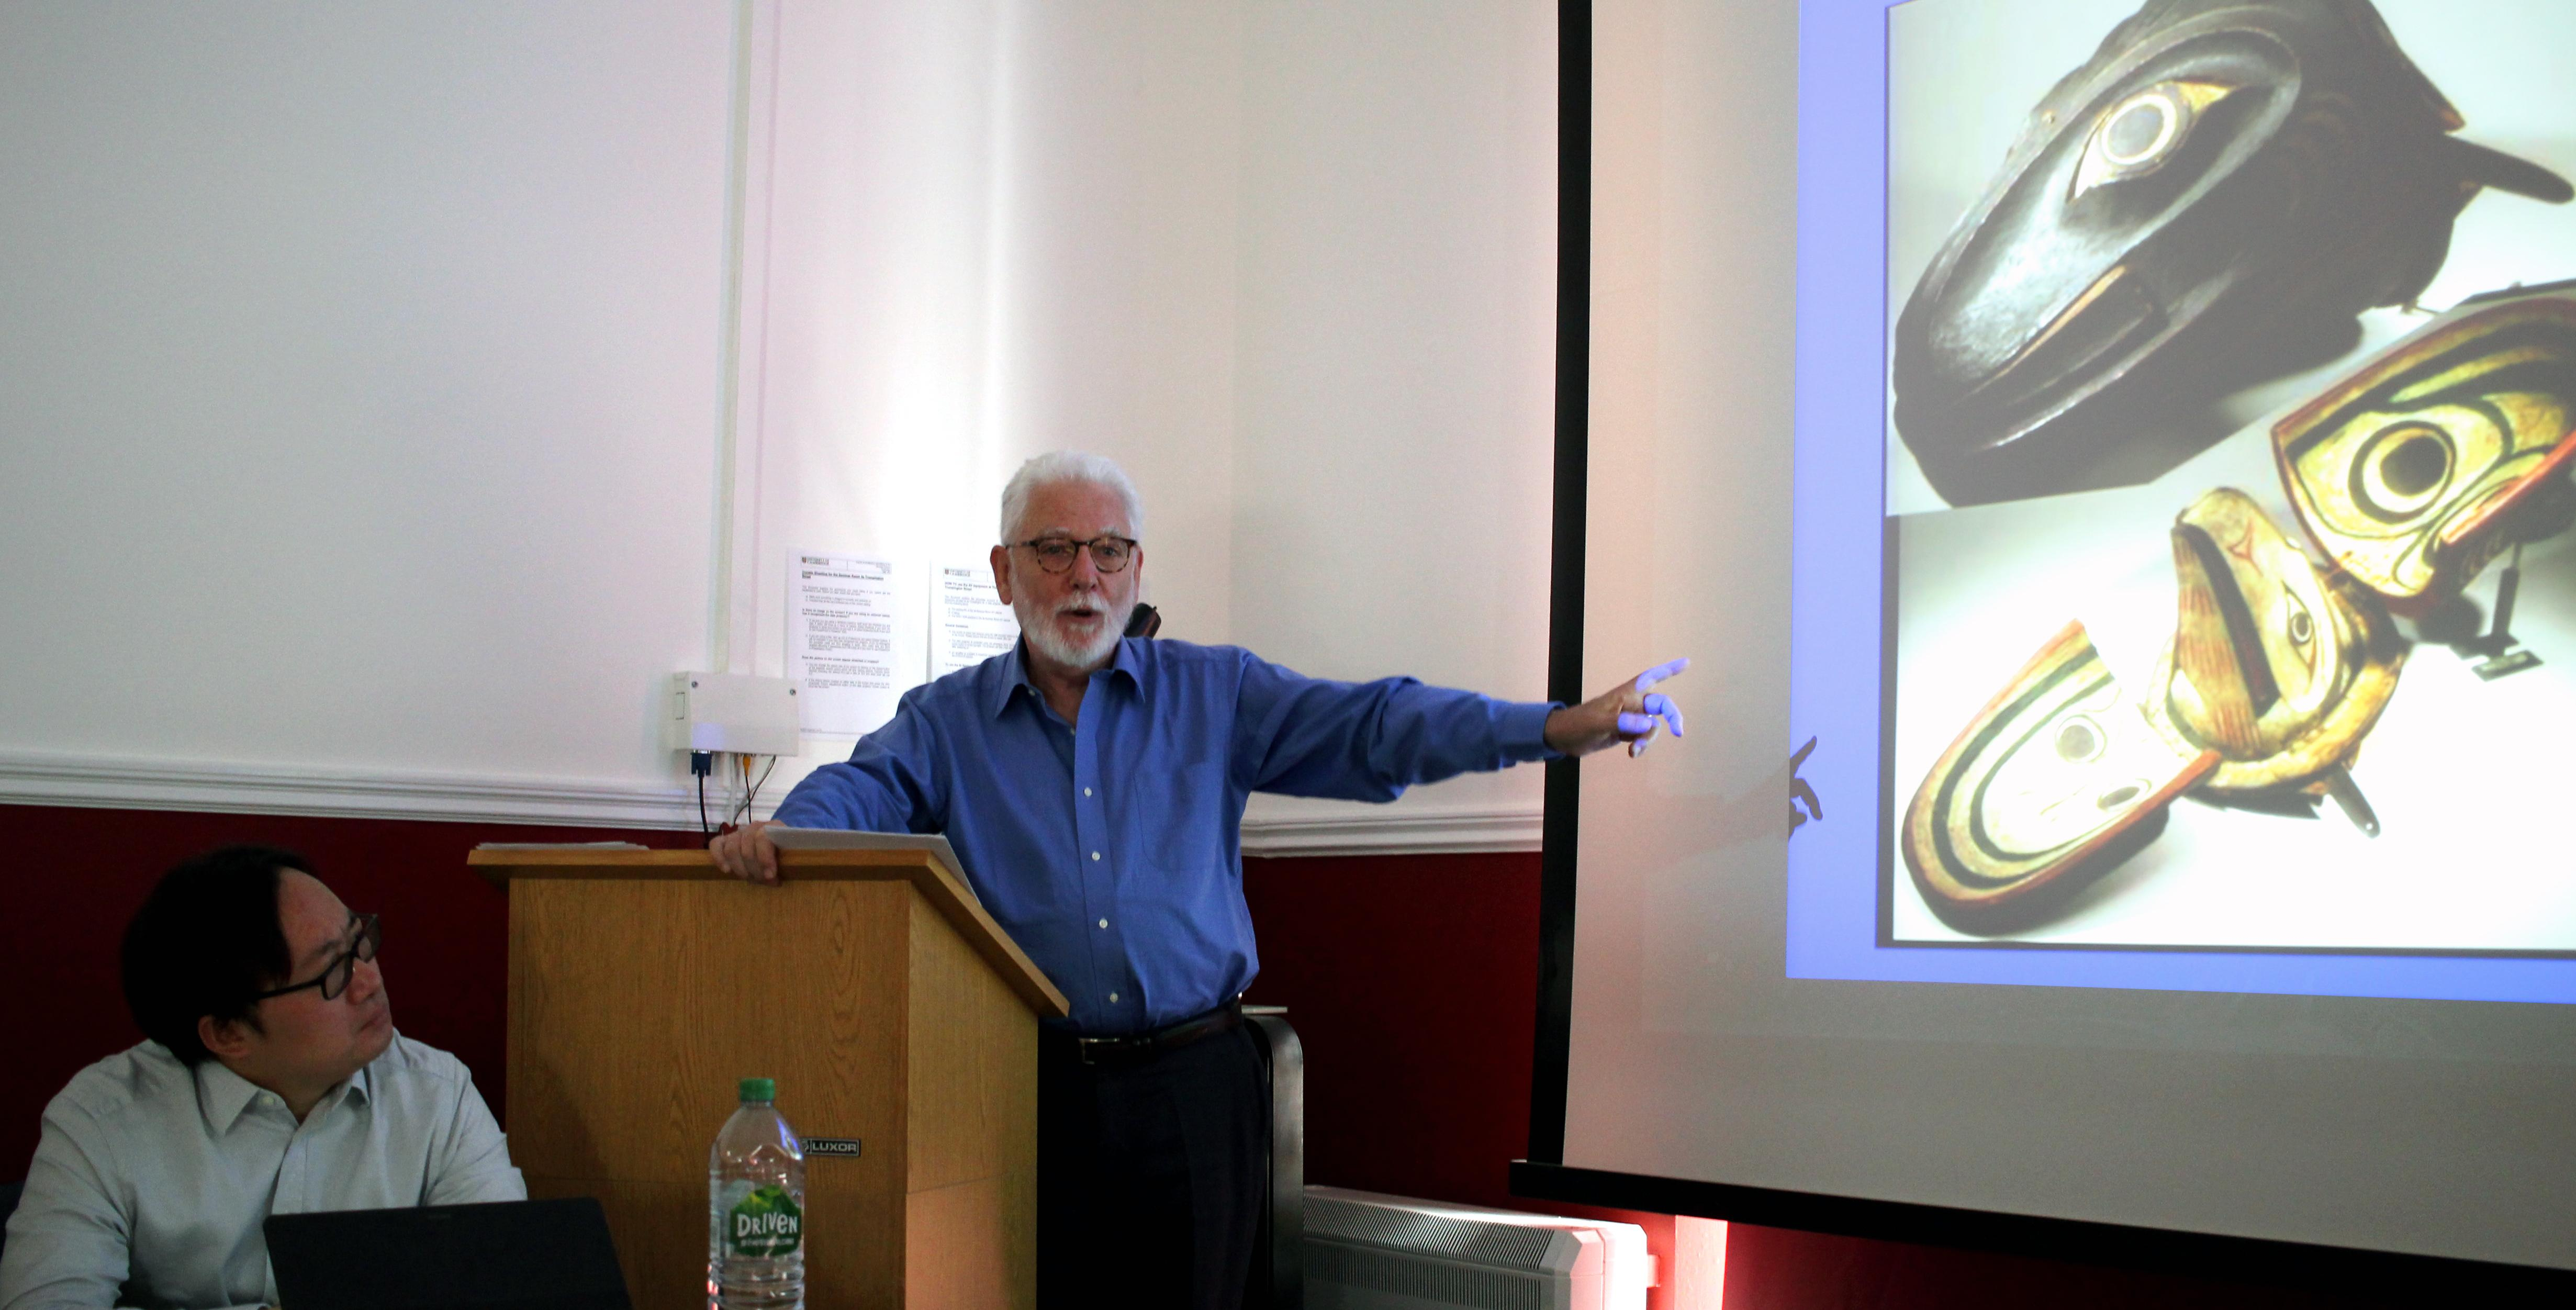 A Cinematic Musée Imaginaire of Spatial Cultural Differences: on 4 & 5 July the inaugural workshop took place to launch Professor François Penz's CineMuseSpace AHRC research project